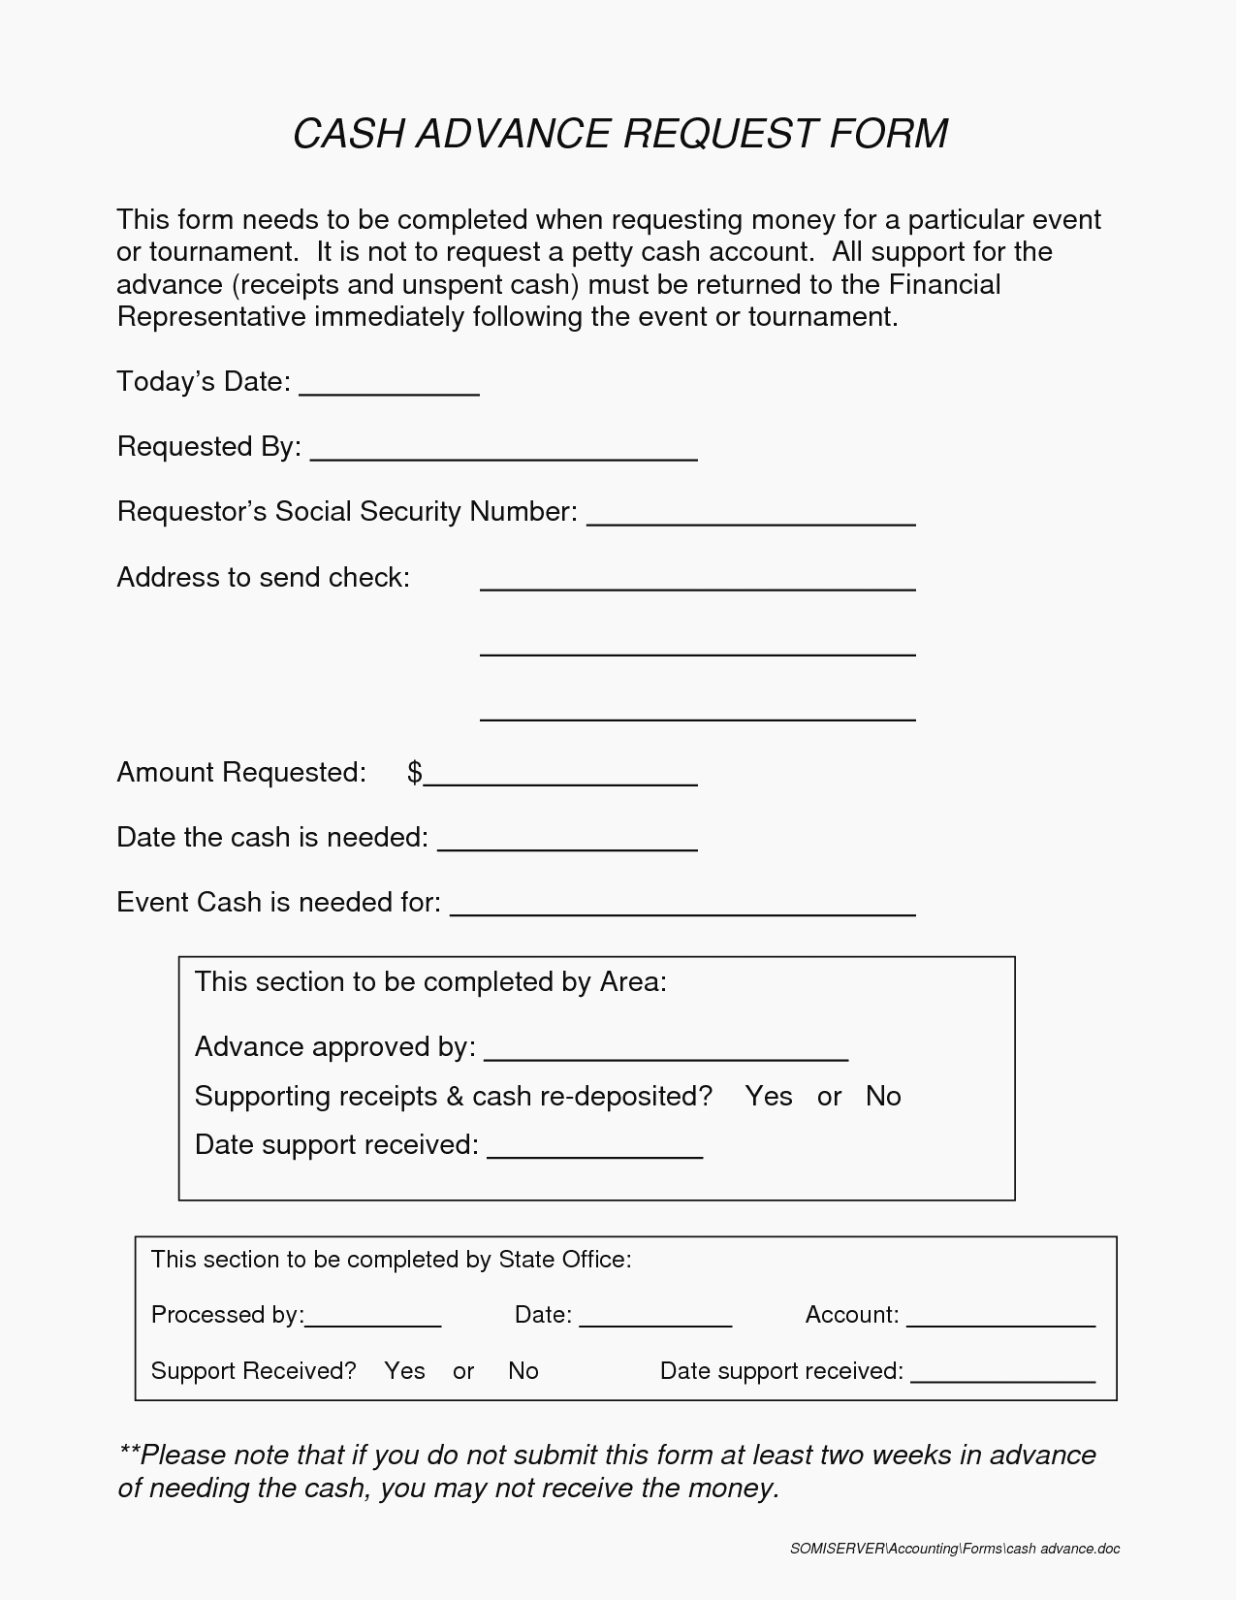 Travel Advance Request form Template Beautiful 96 Cash Advance Request form Travel Authorization form